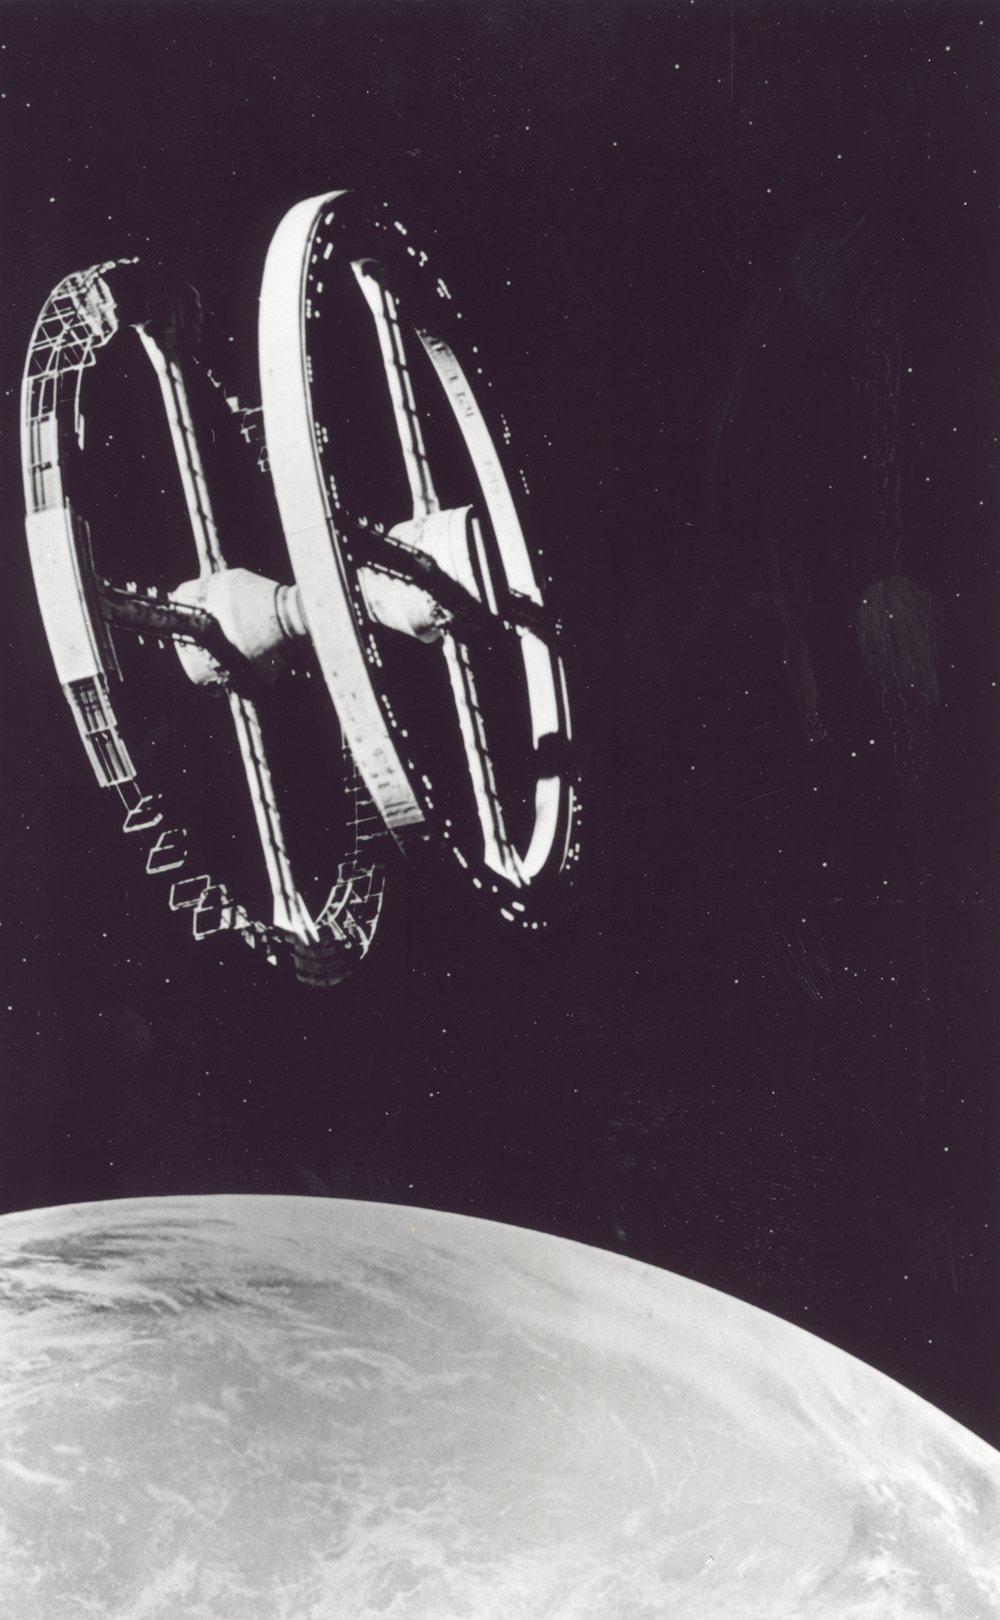 Our 10 Favorite Sci-Fi Space Stations of All Time